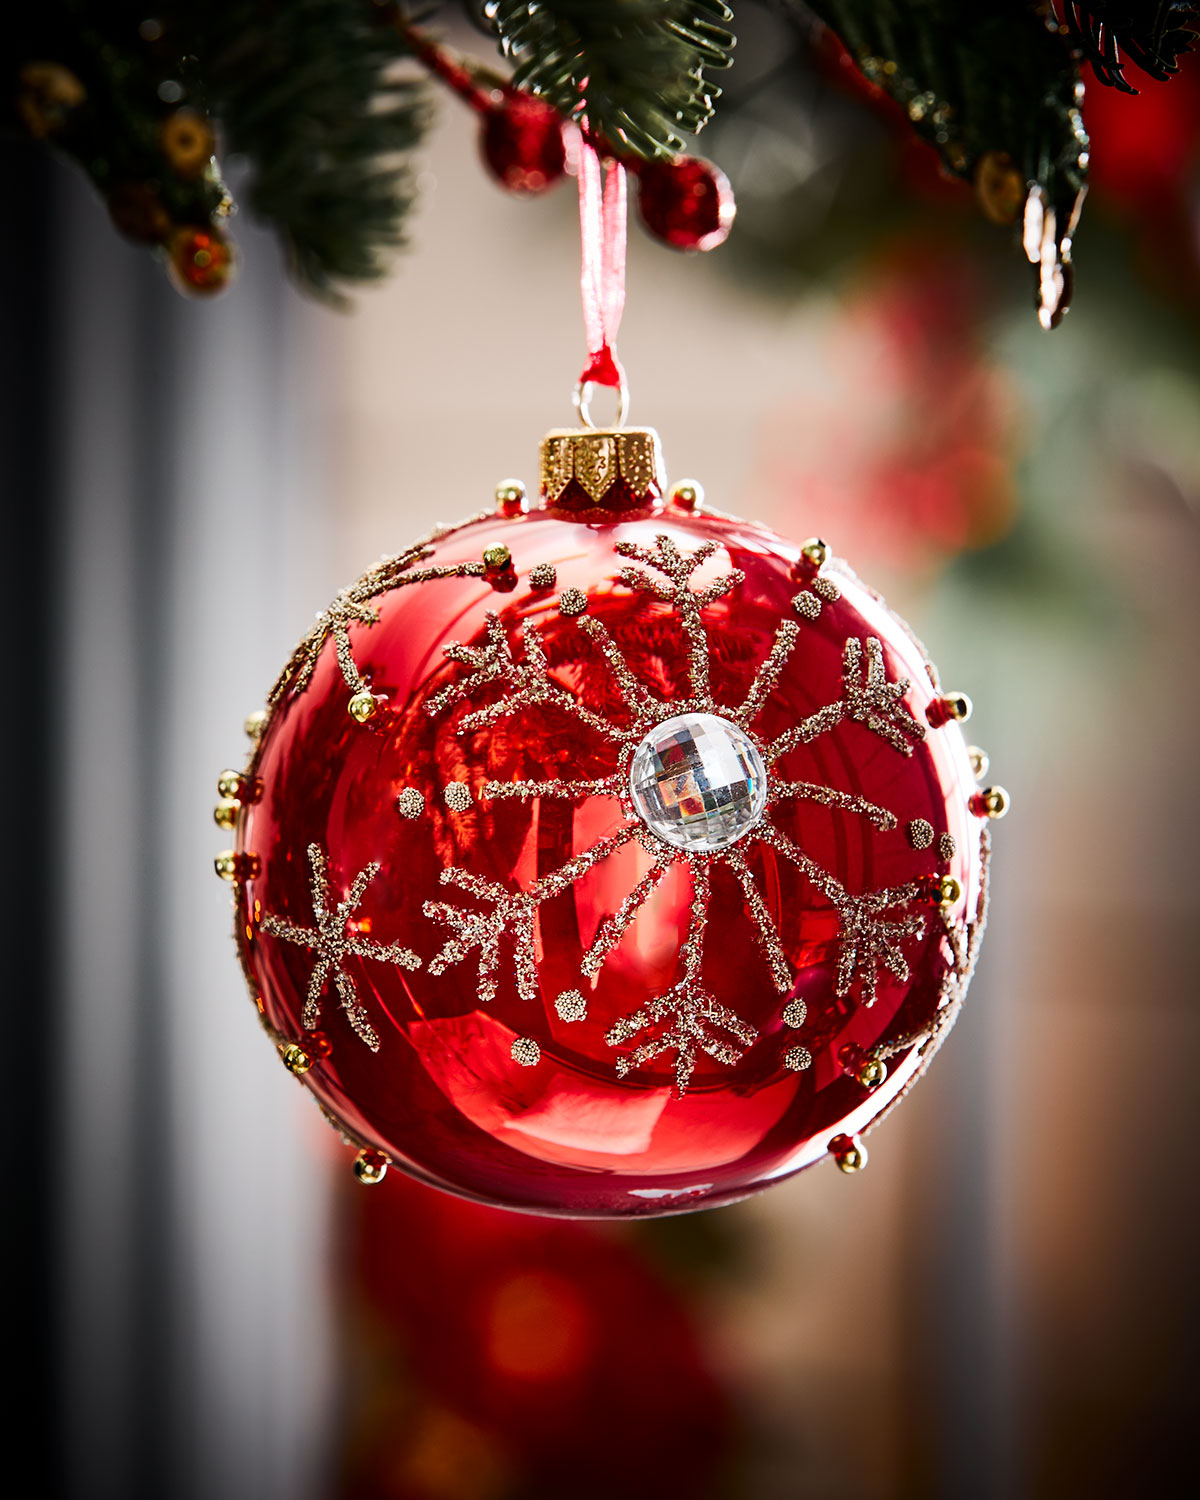 red opal glass ball christmas ornament w silver snowflakes - Red And Silver Christmas Ornaments